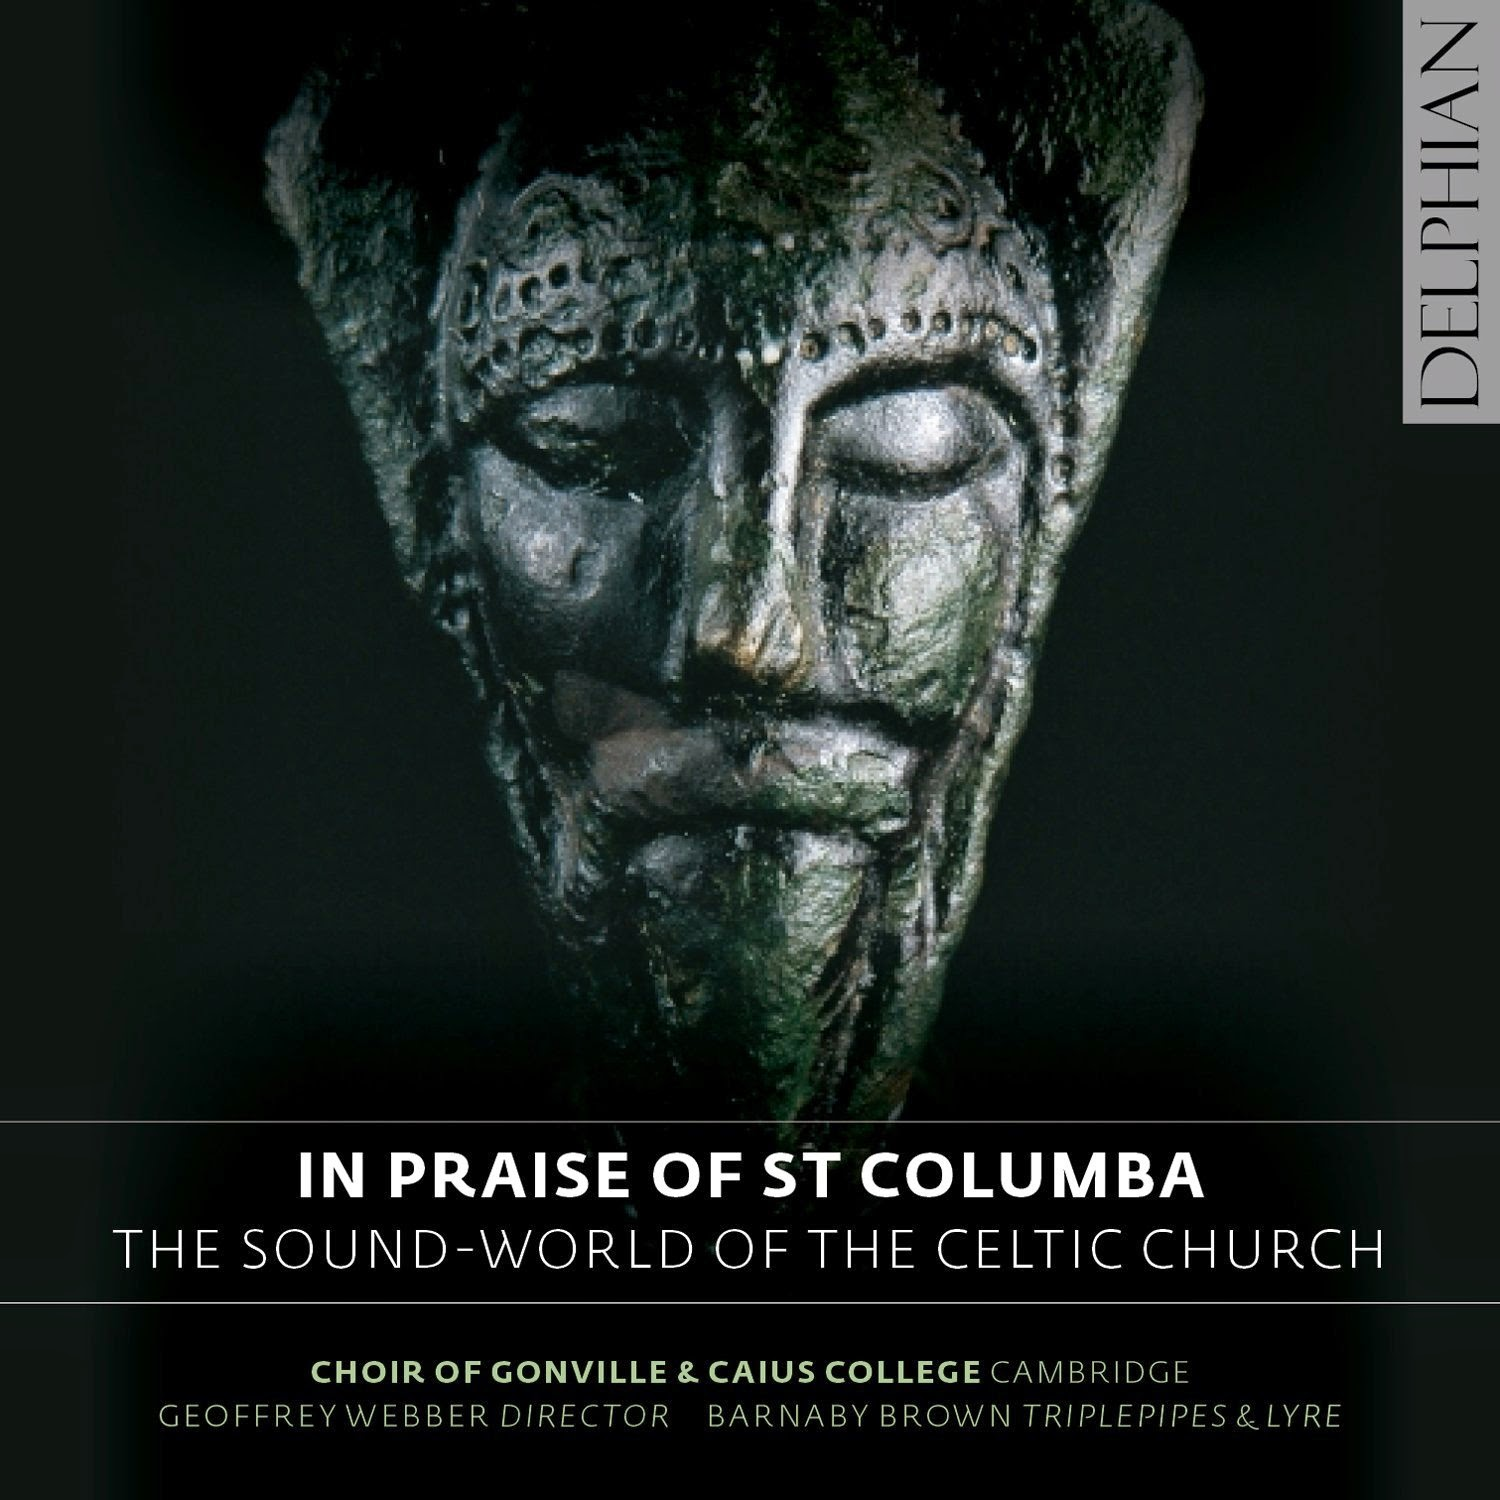 In praise of Saint Columba